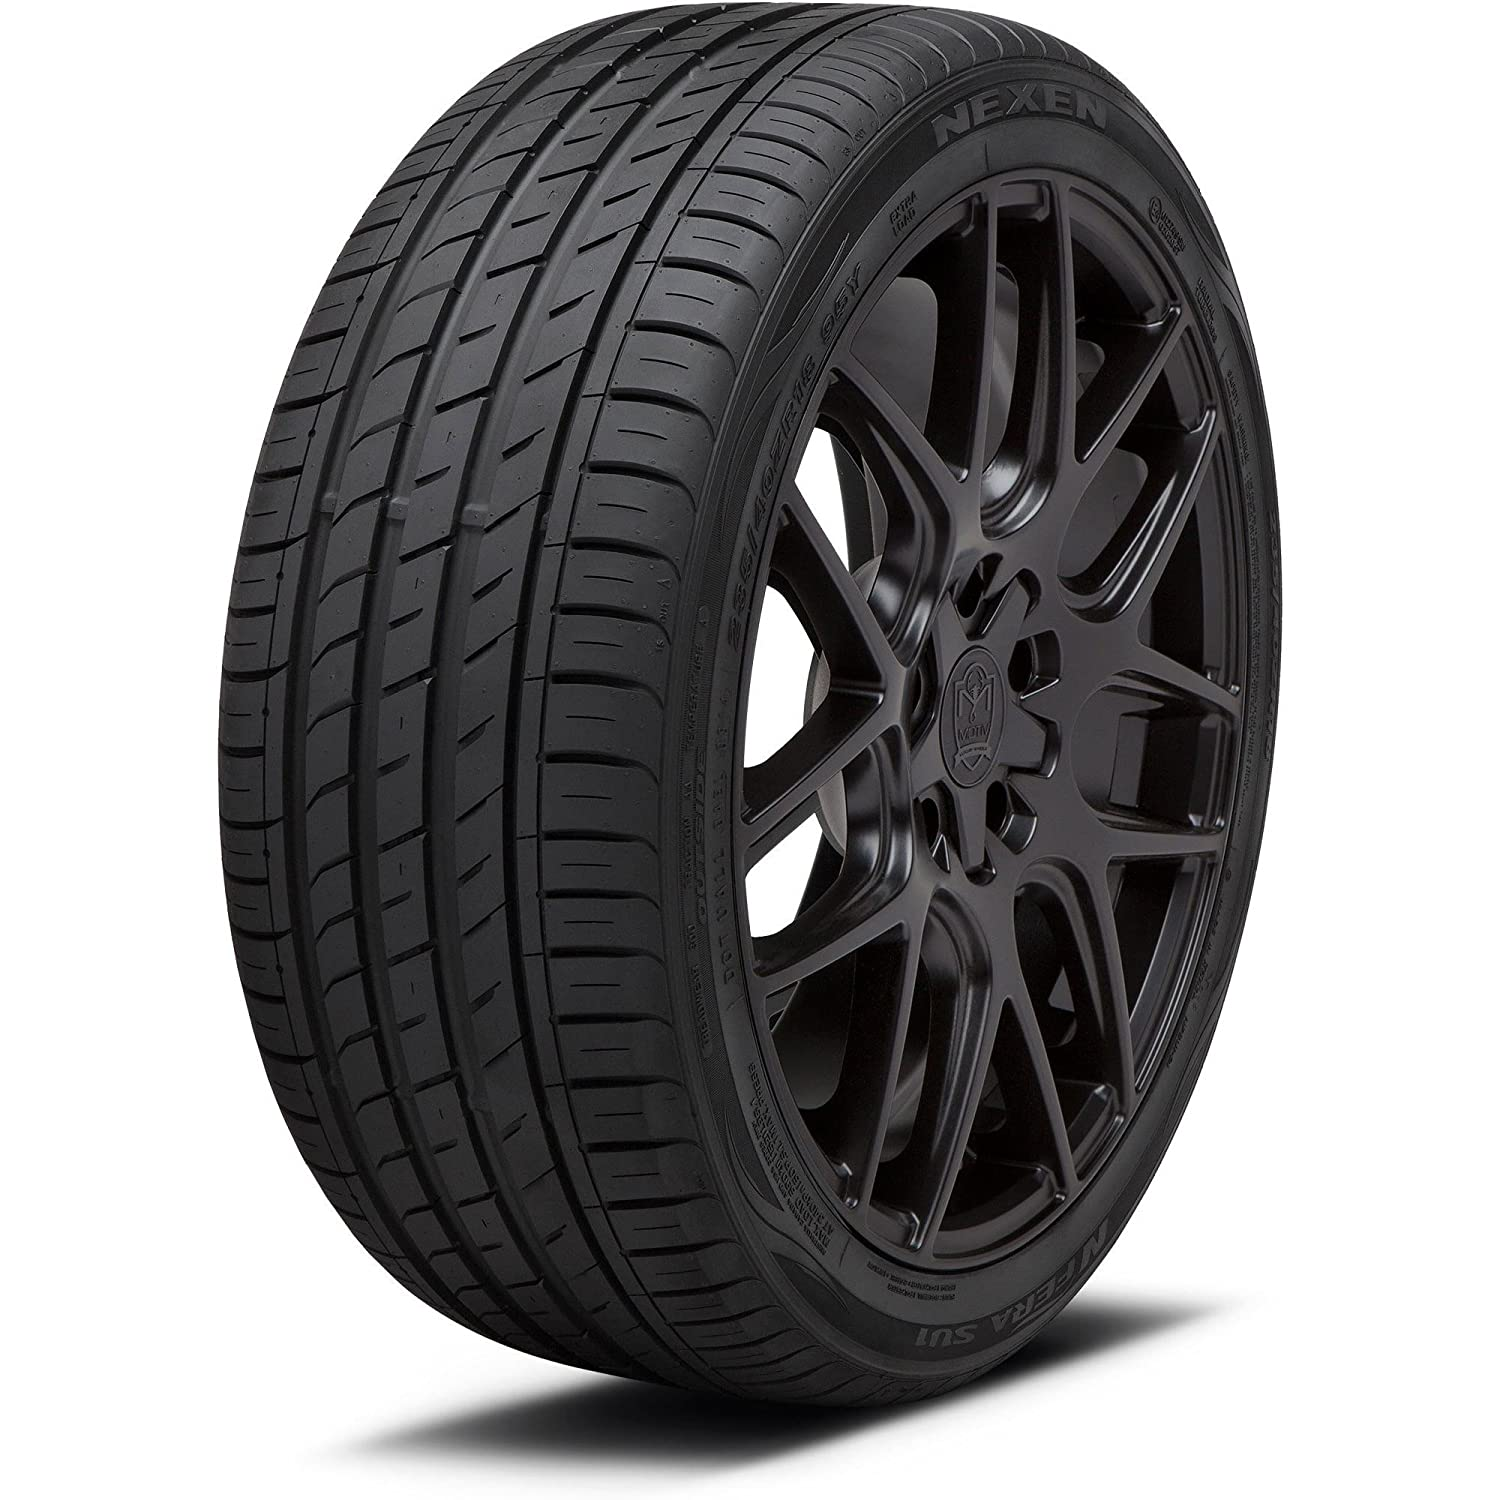 Nexen NFera SU1 All-Season Radial Tire 245//35R20 95Y